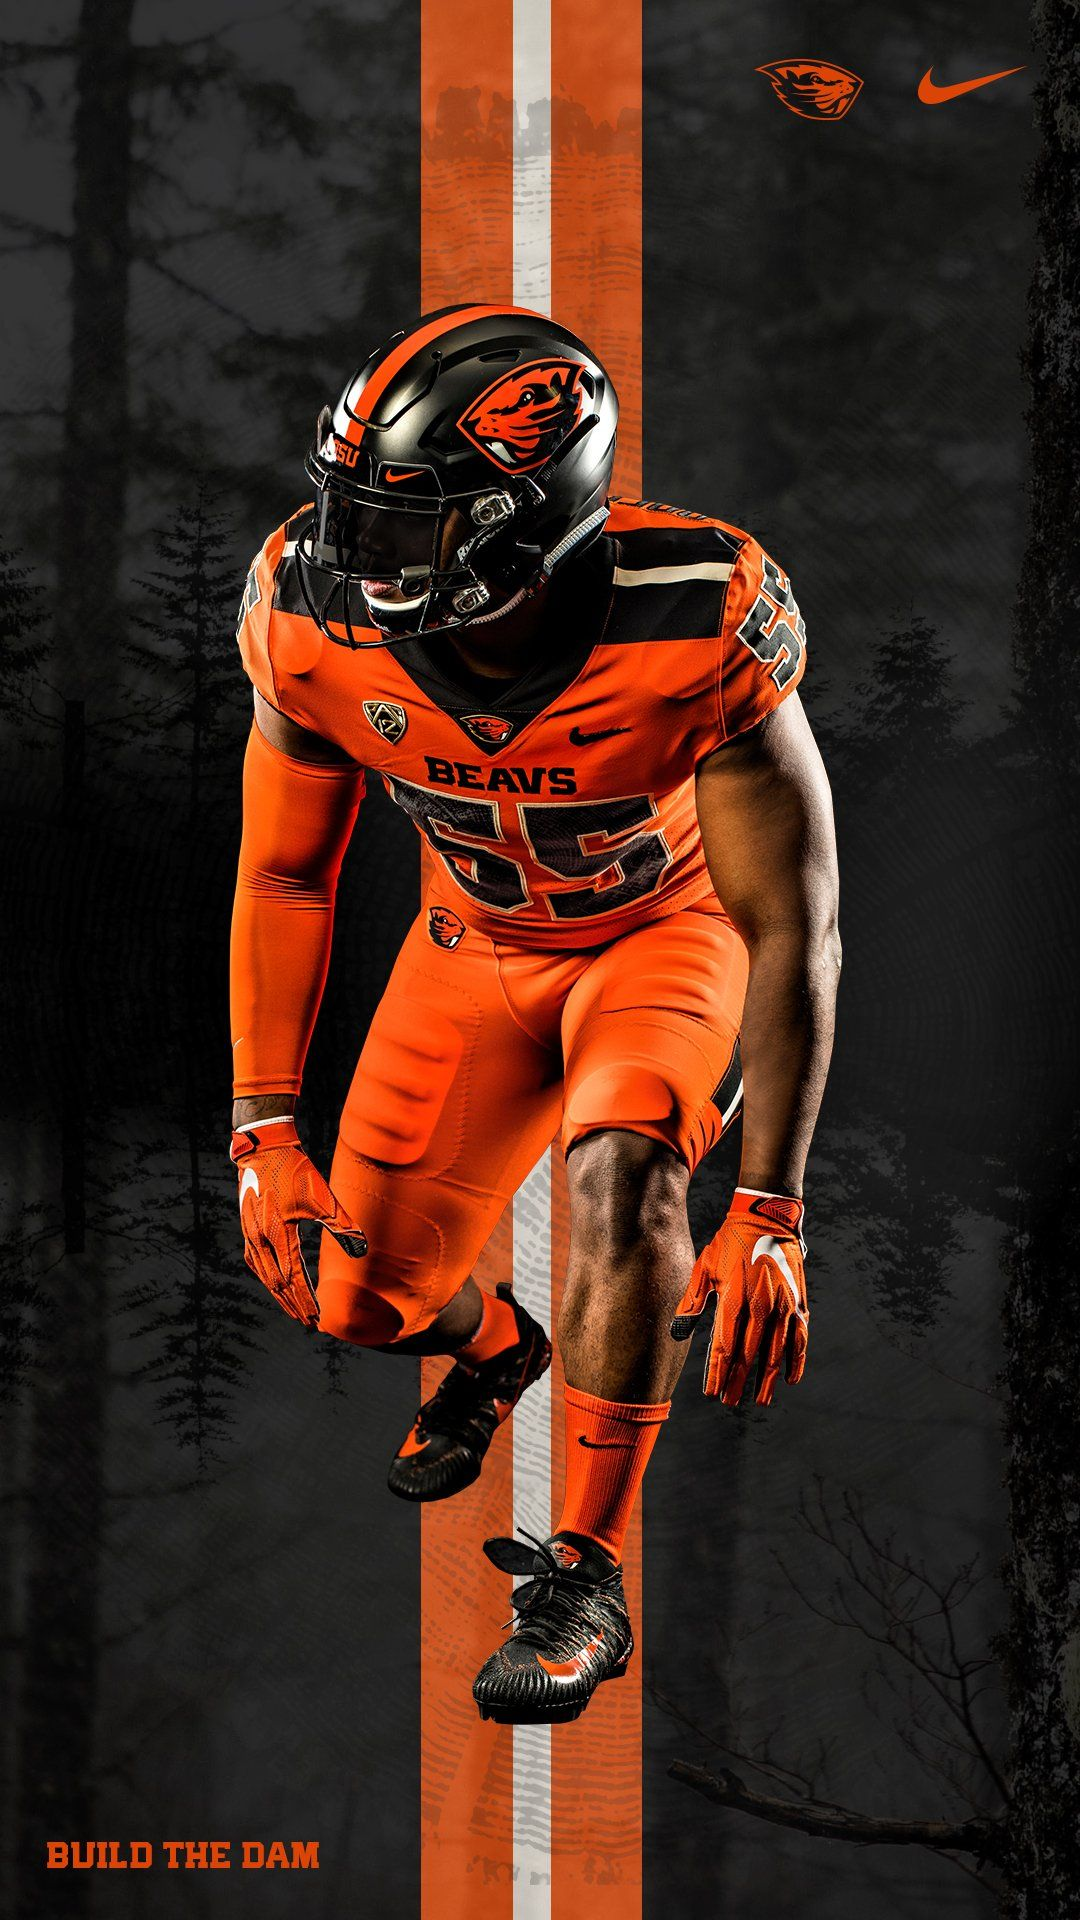 2019 Oregon State University Beavers Football Uniforms Orange On Orange Football Uniforms College Football Uniforms Football Poster